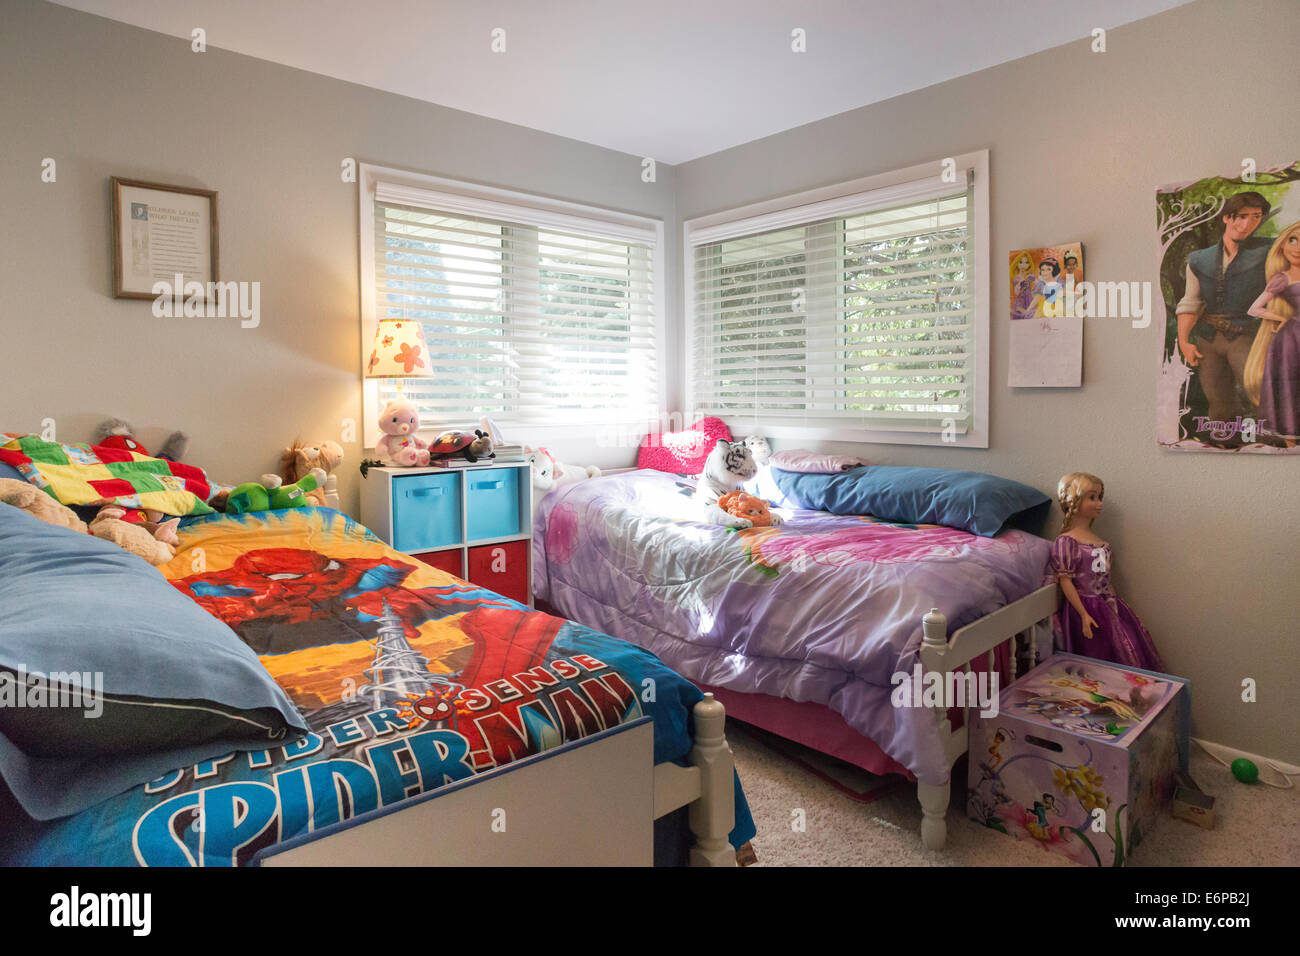 Brother And Sister Bedroom Usa Stock Photo Royalty Free